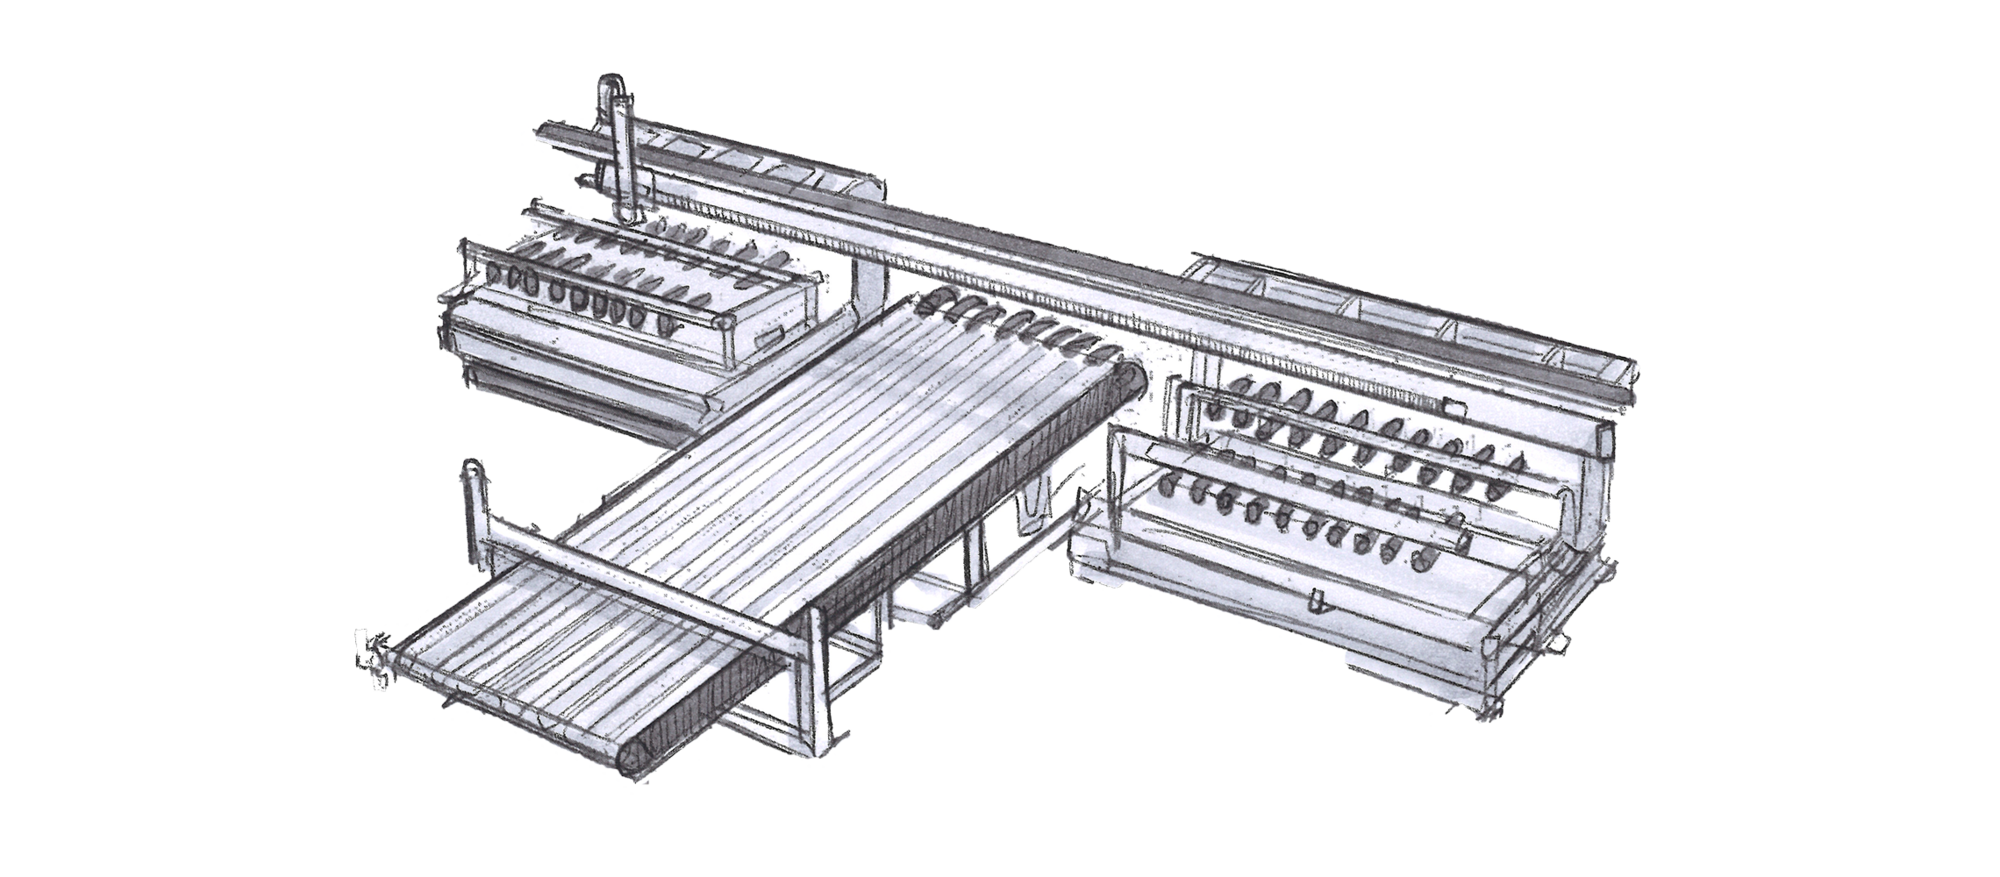 Metal Sheet Handling, Blank Destacking System, Board Stack, Swivel Arms, Press Line, Automatic Feed | © Güdel Group AG